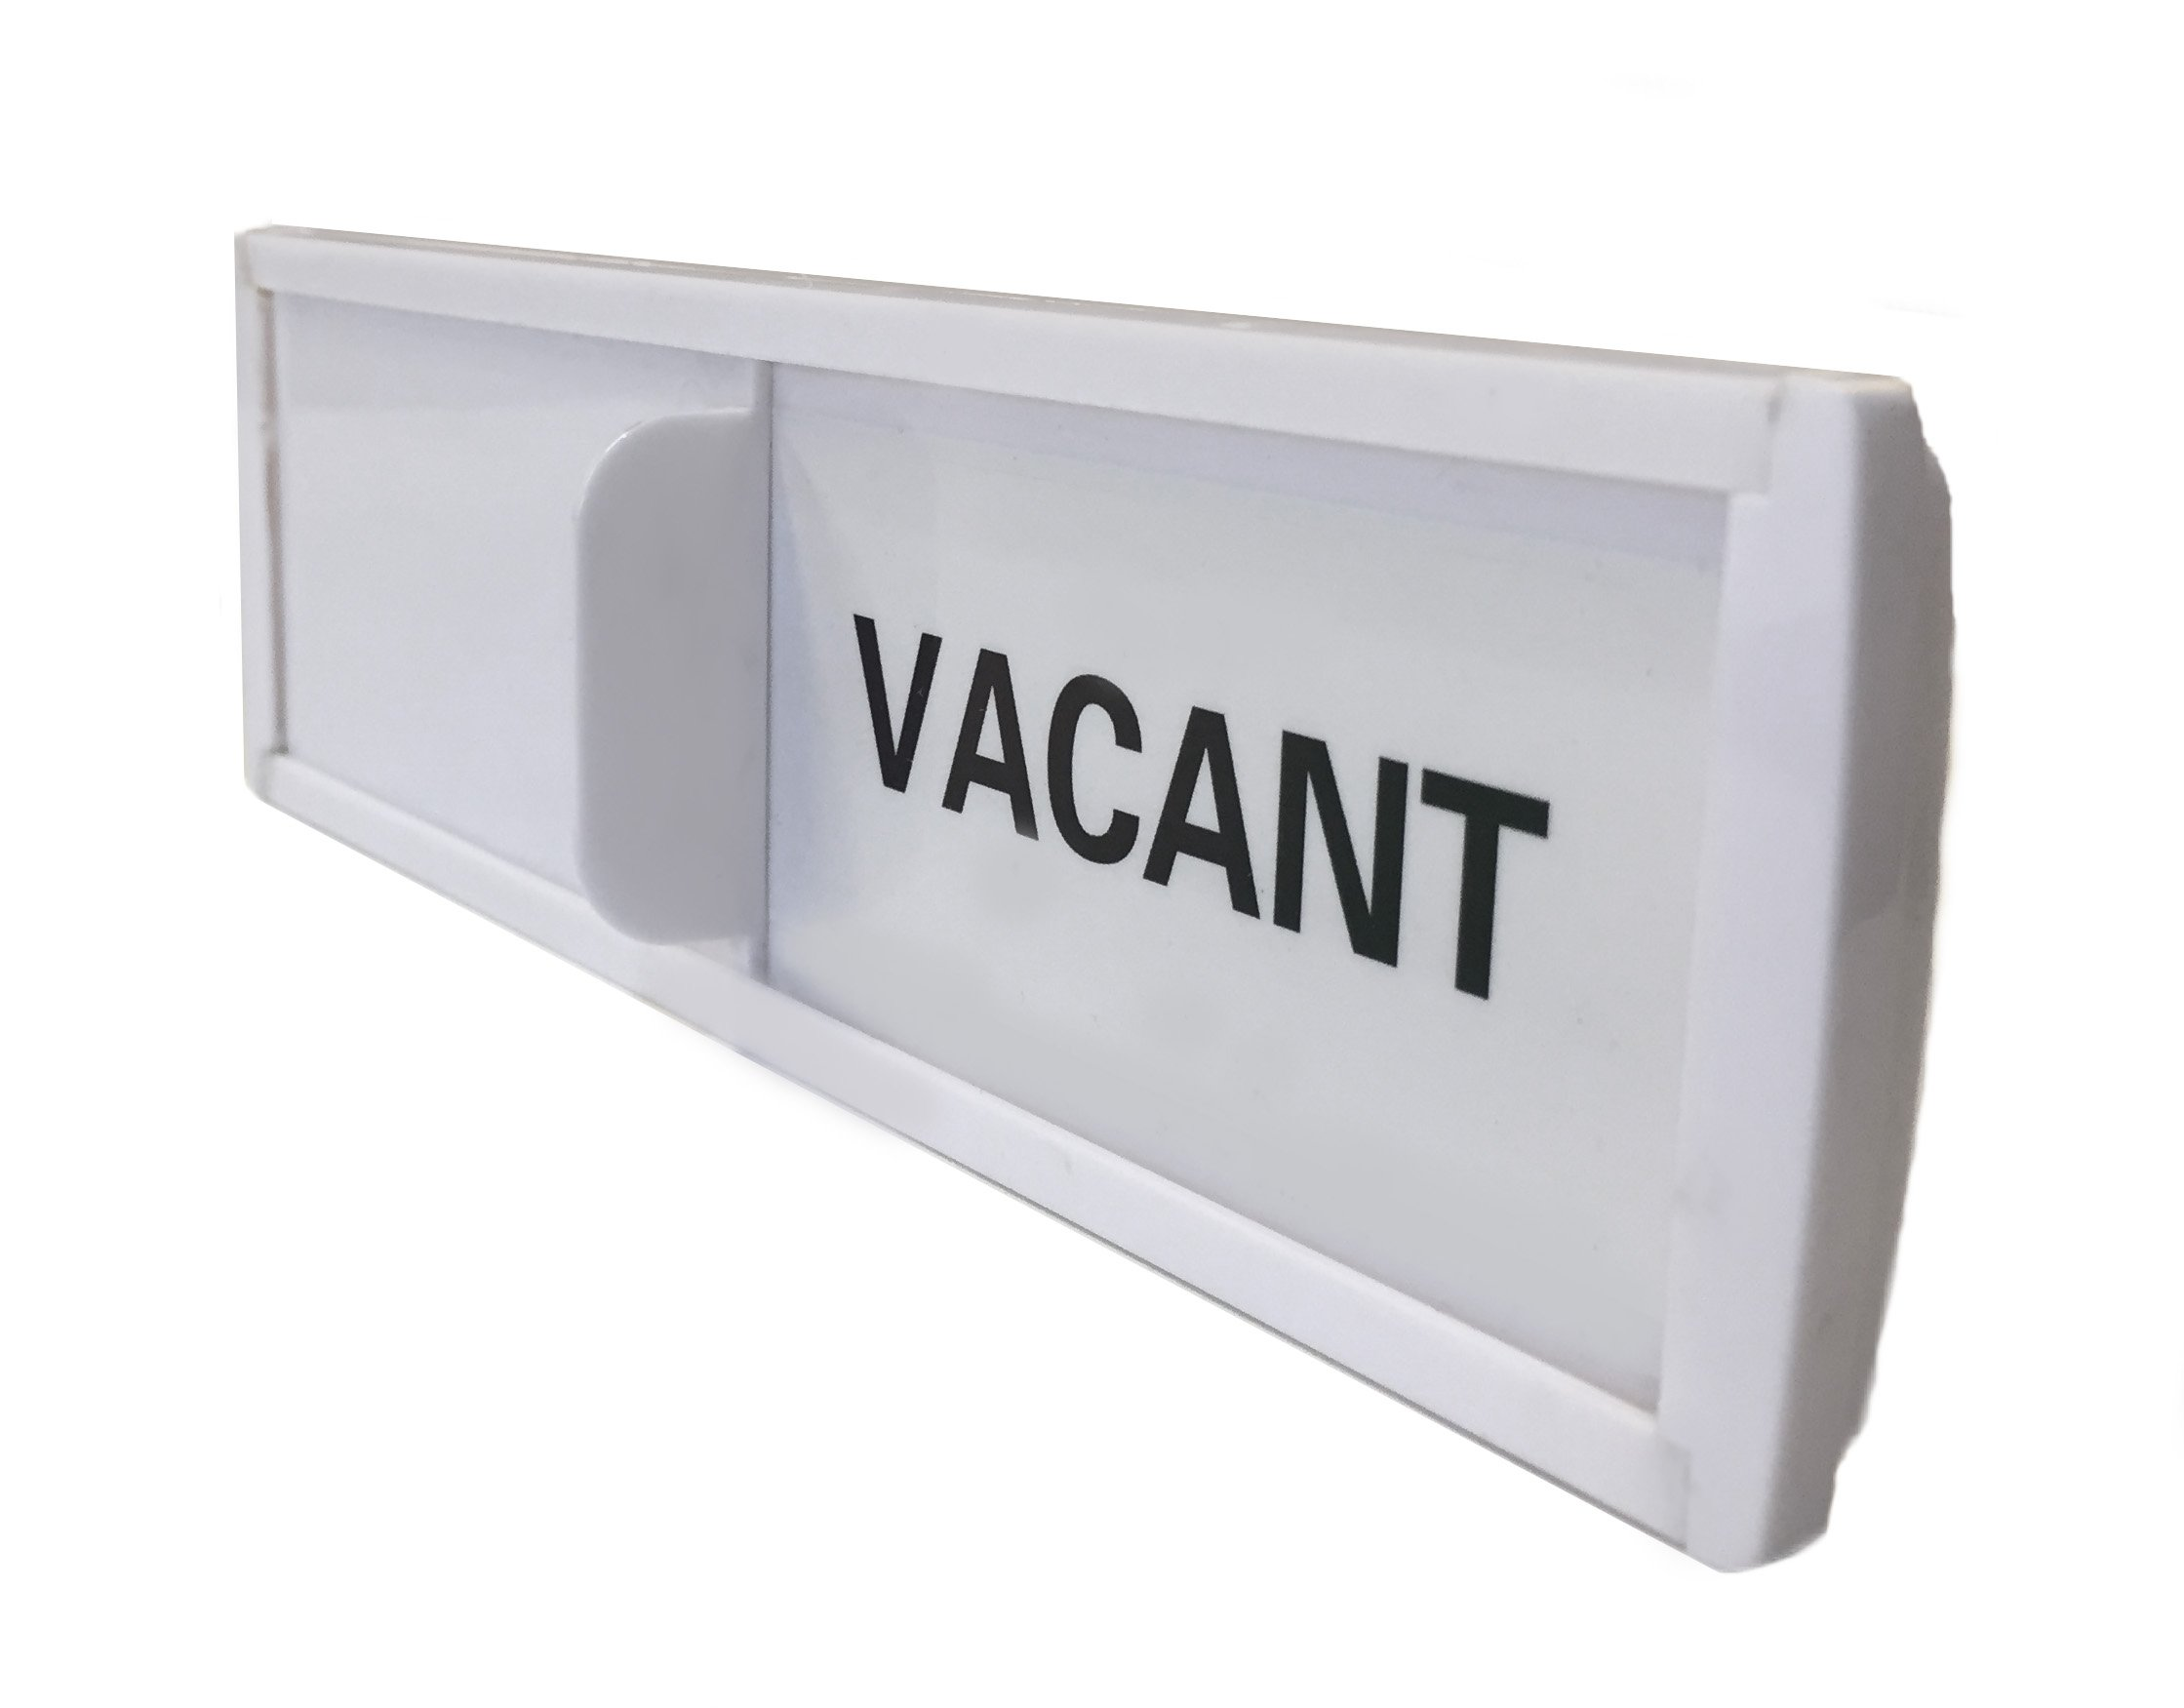 White Privacy Sign for Offices or Homes (Vacant Sign, Occupied Sign) - For Rooms that are Vacant or Occupied